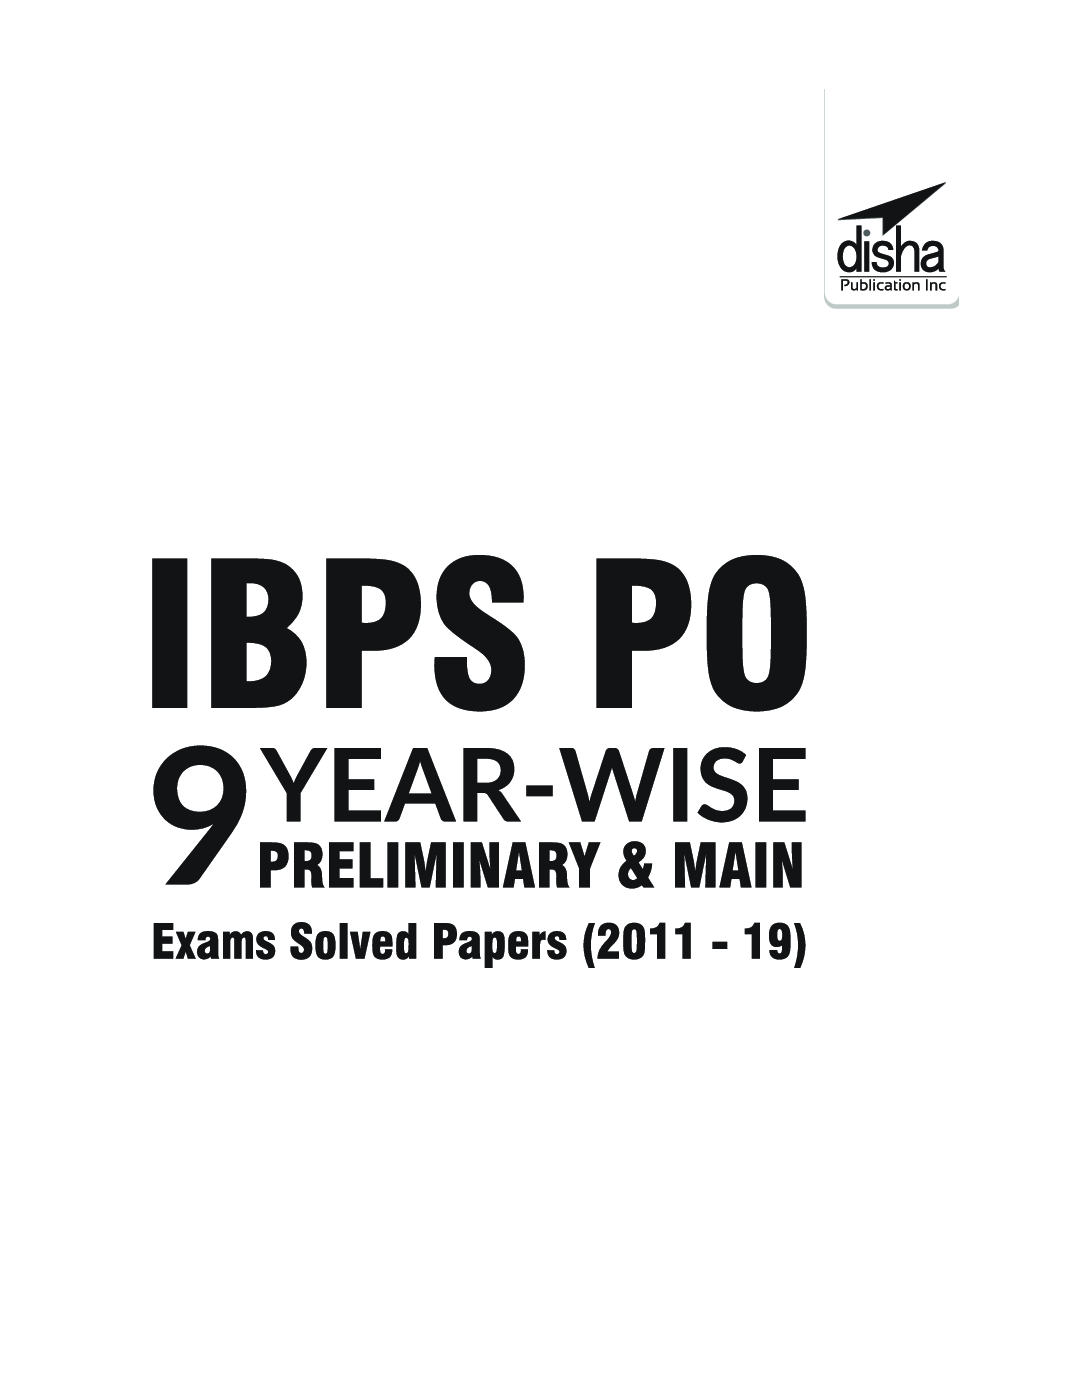 IBPS PO 9 Year-Wise Preliminary & Main Exams Solved Papers (2011-19) - Page 2